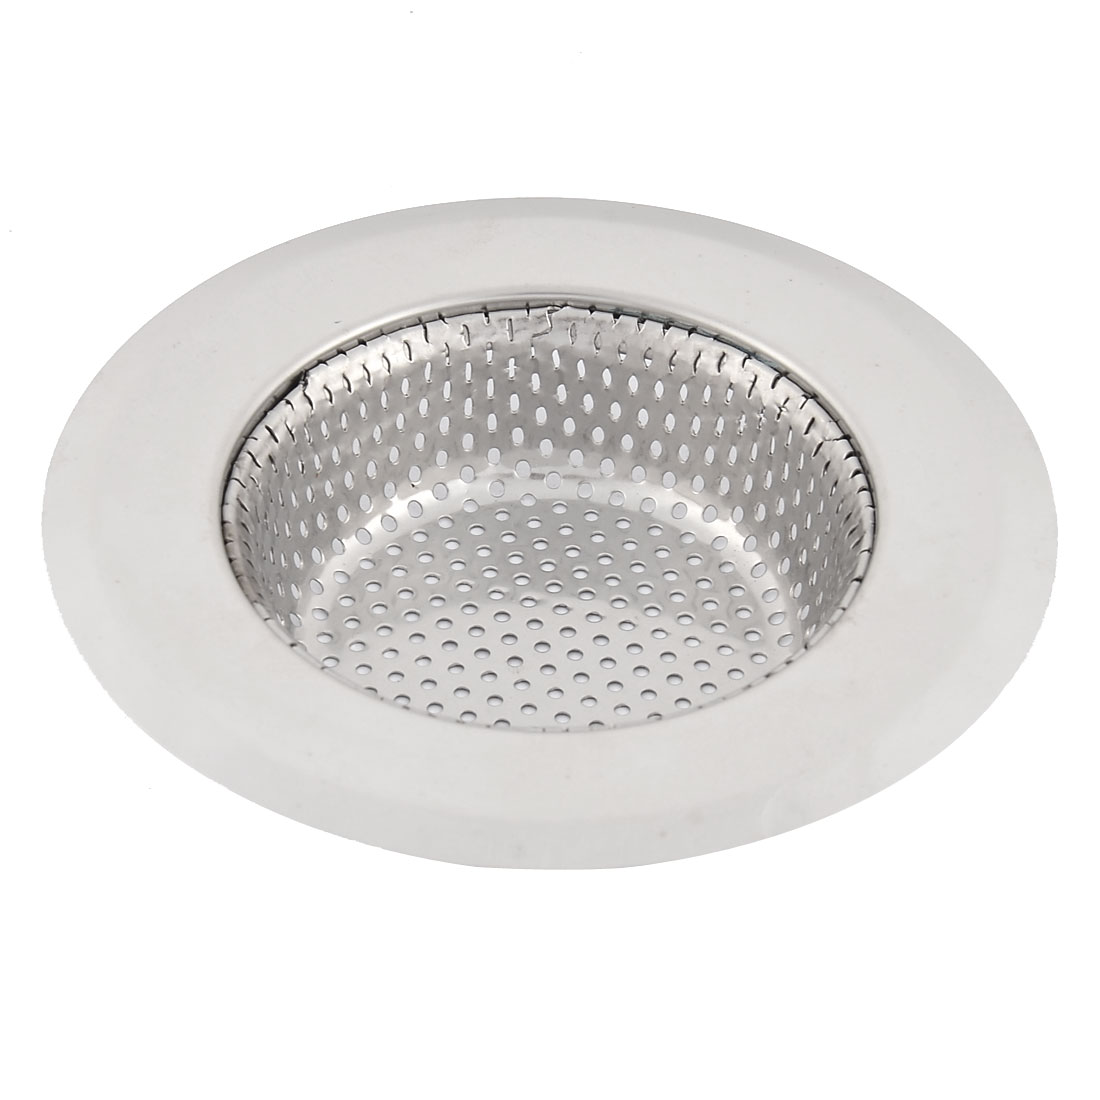 Home Kitchen Stainless Steel Basin Sink Mesopore Strainer Drainer Silver Tone